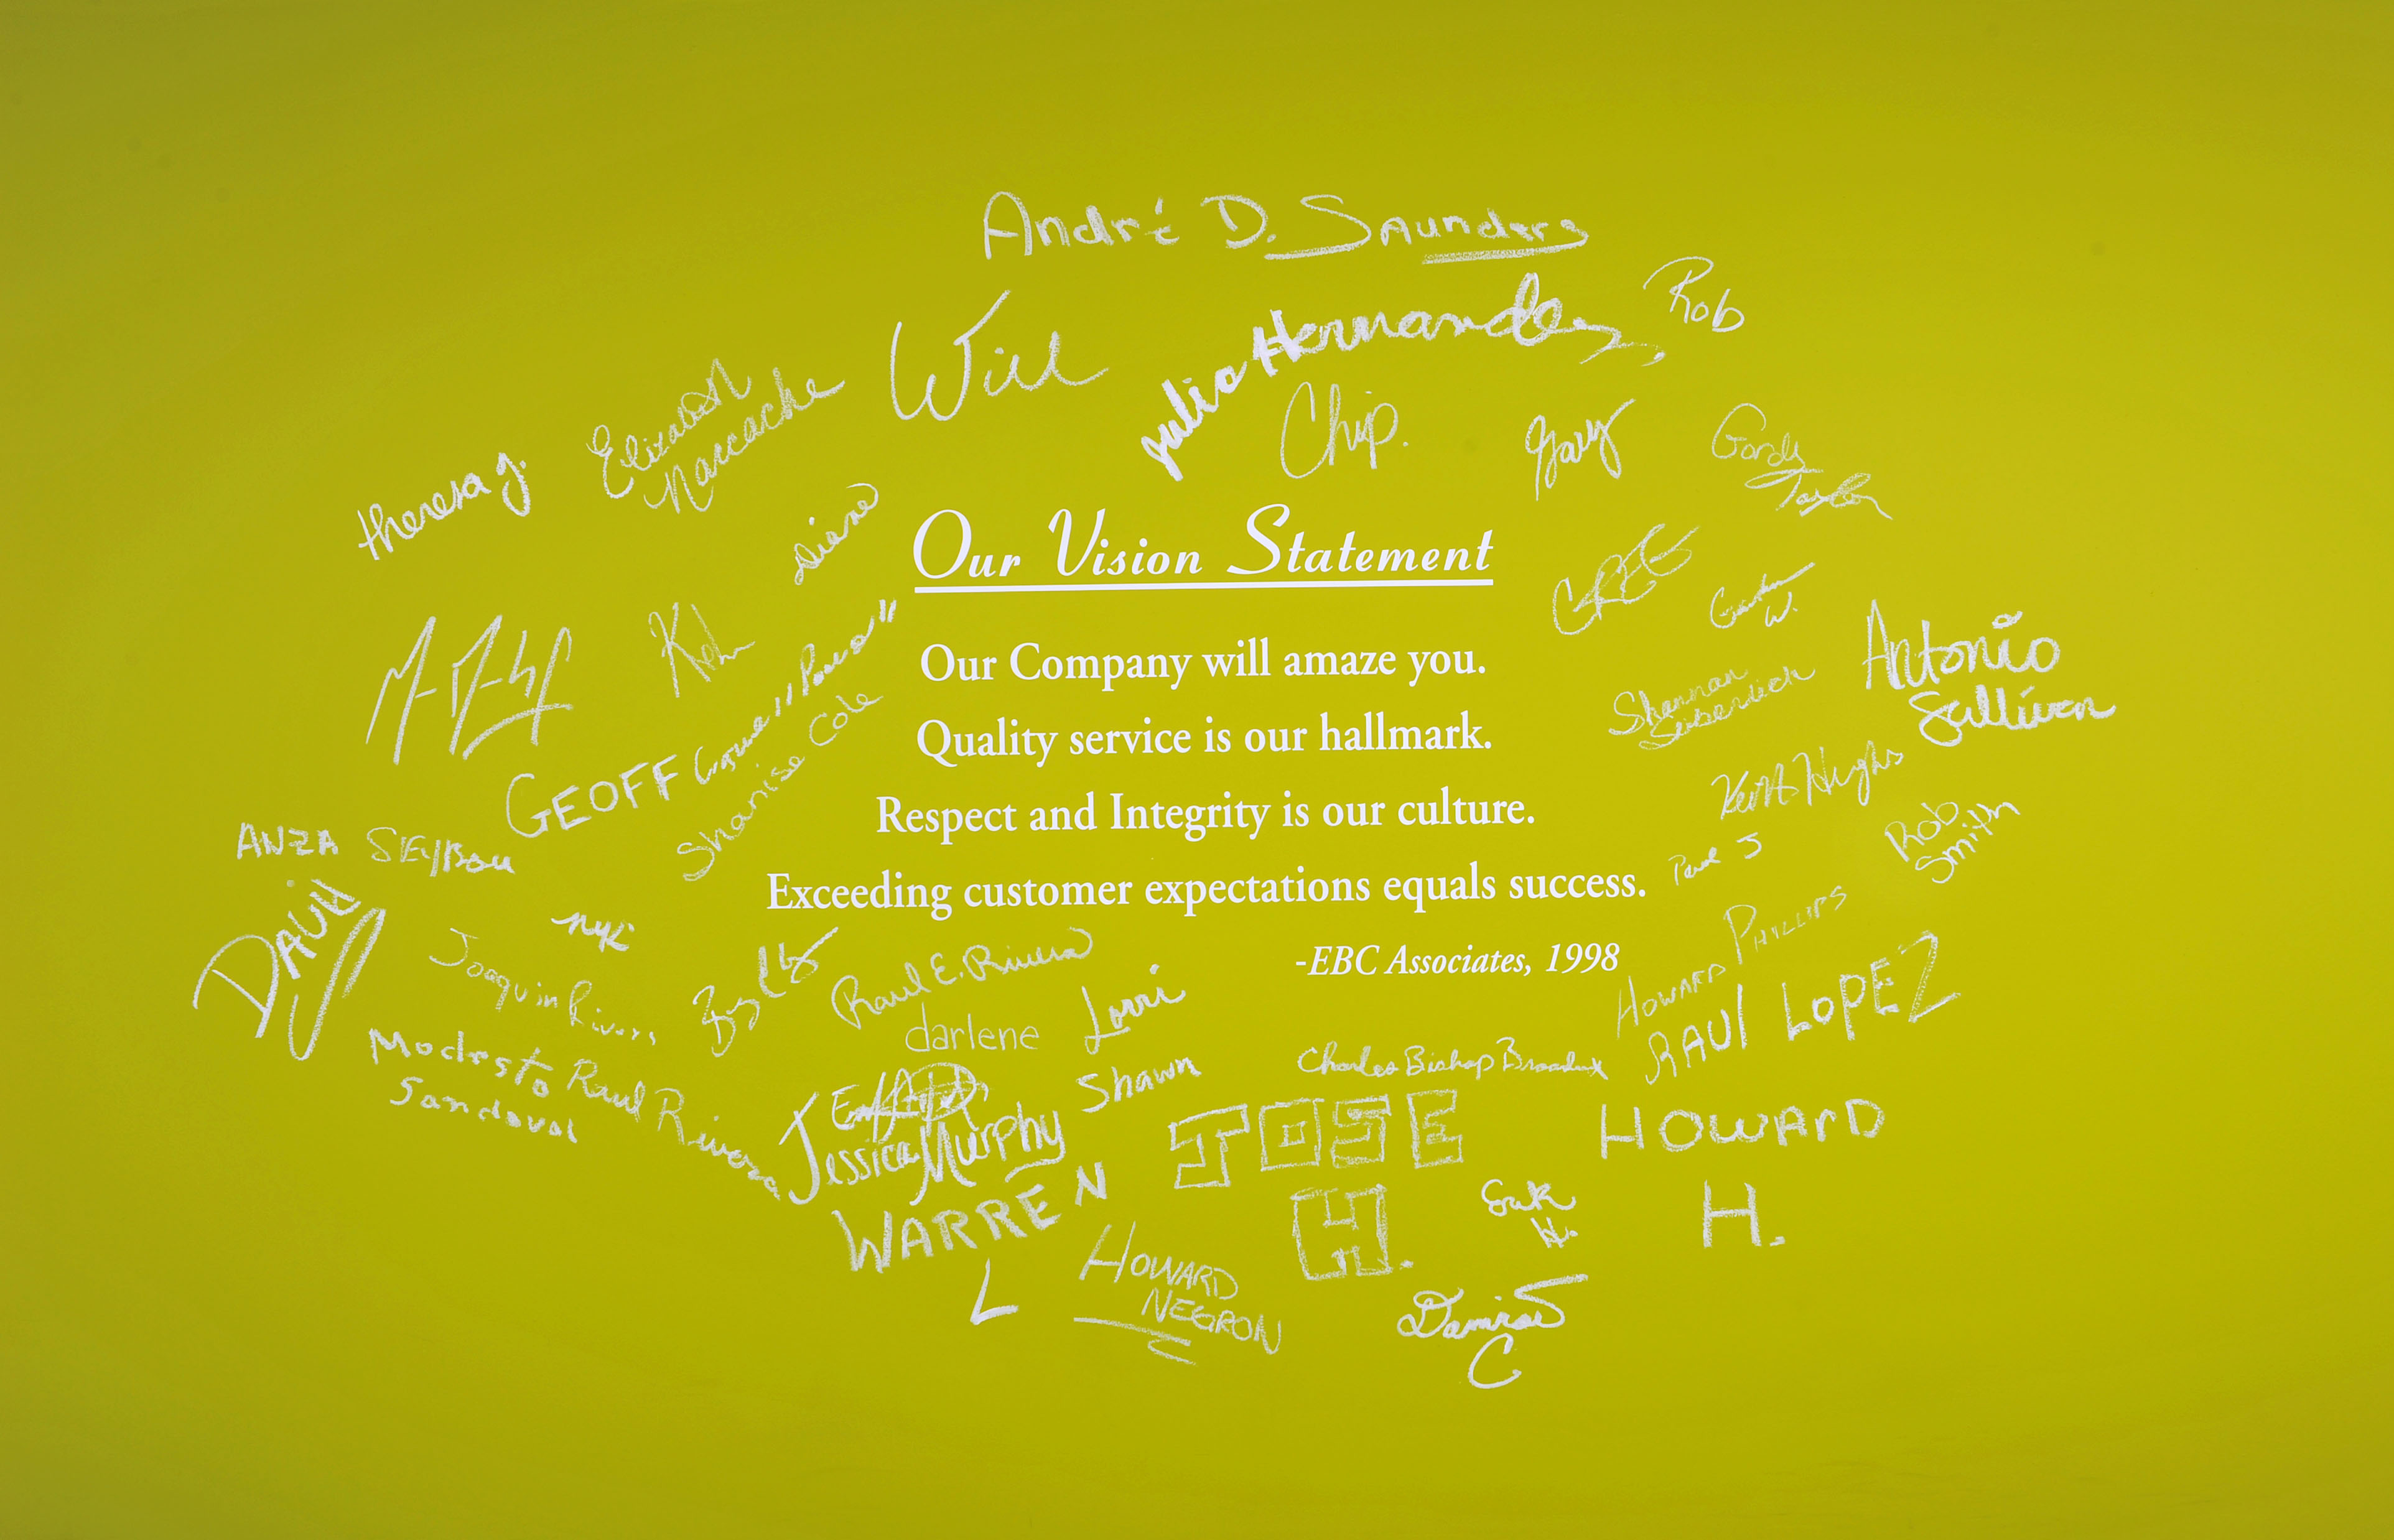 Our Vision Statement